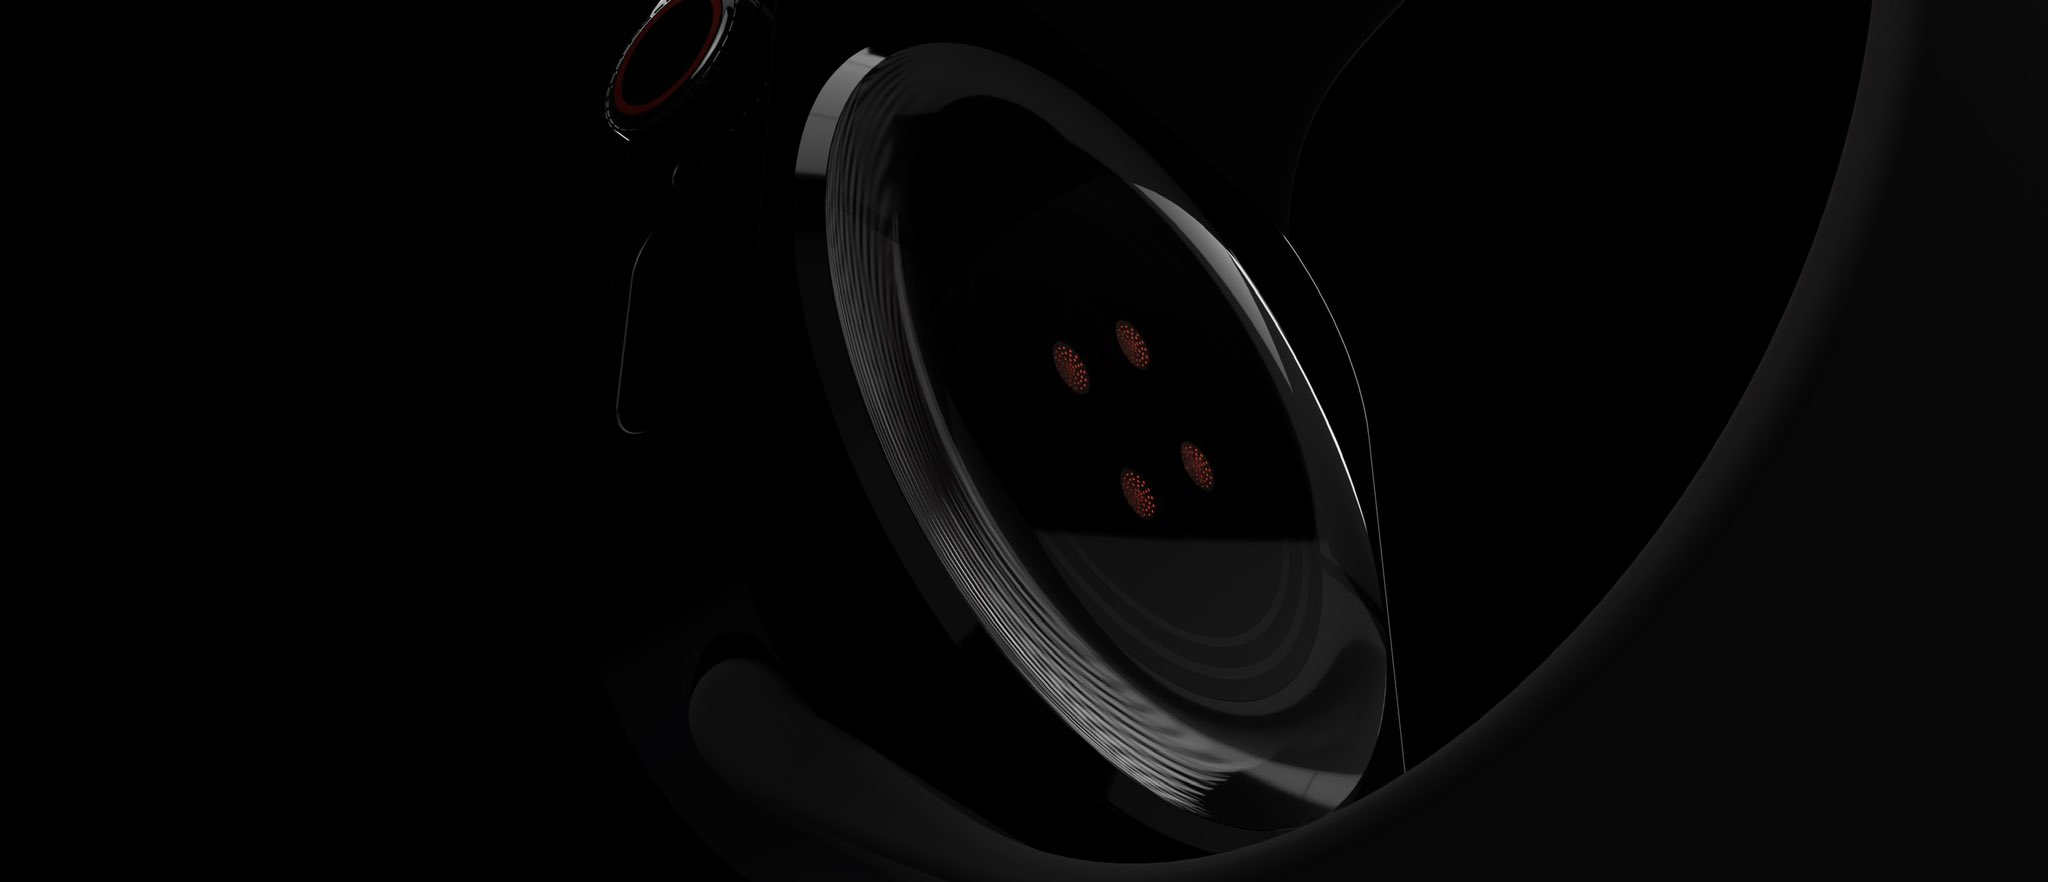 Back of Apple watch 7 face